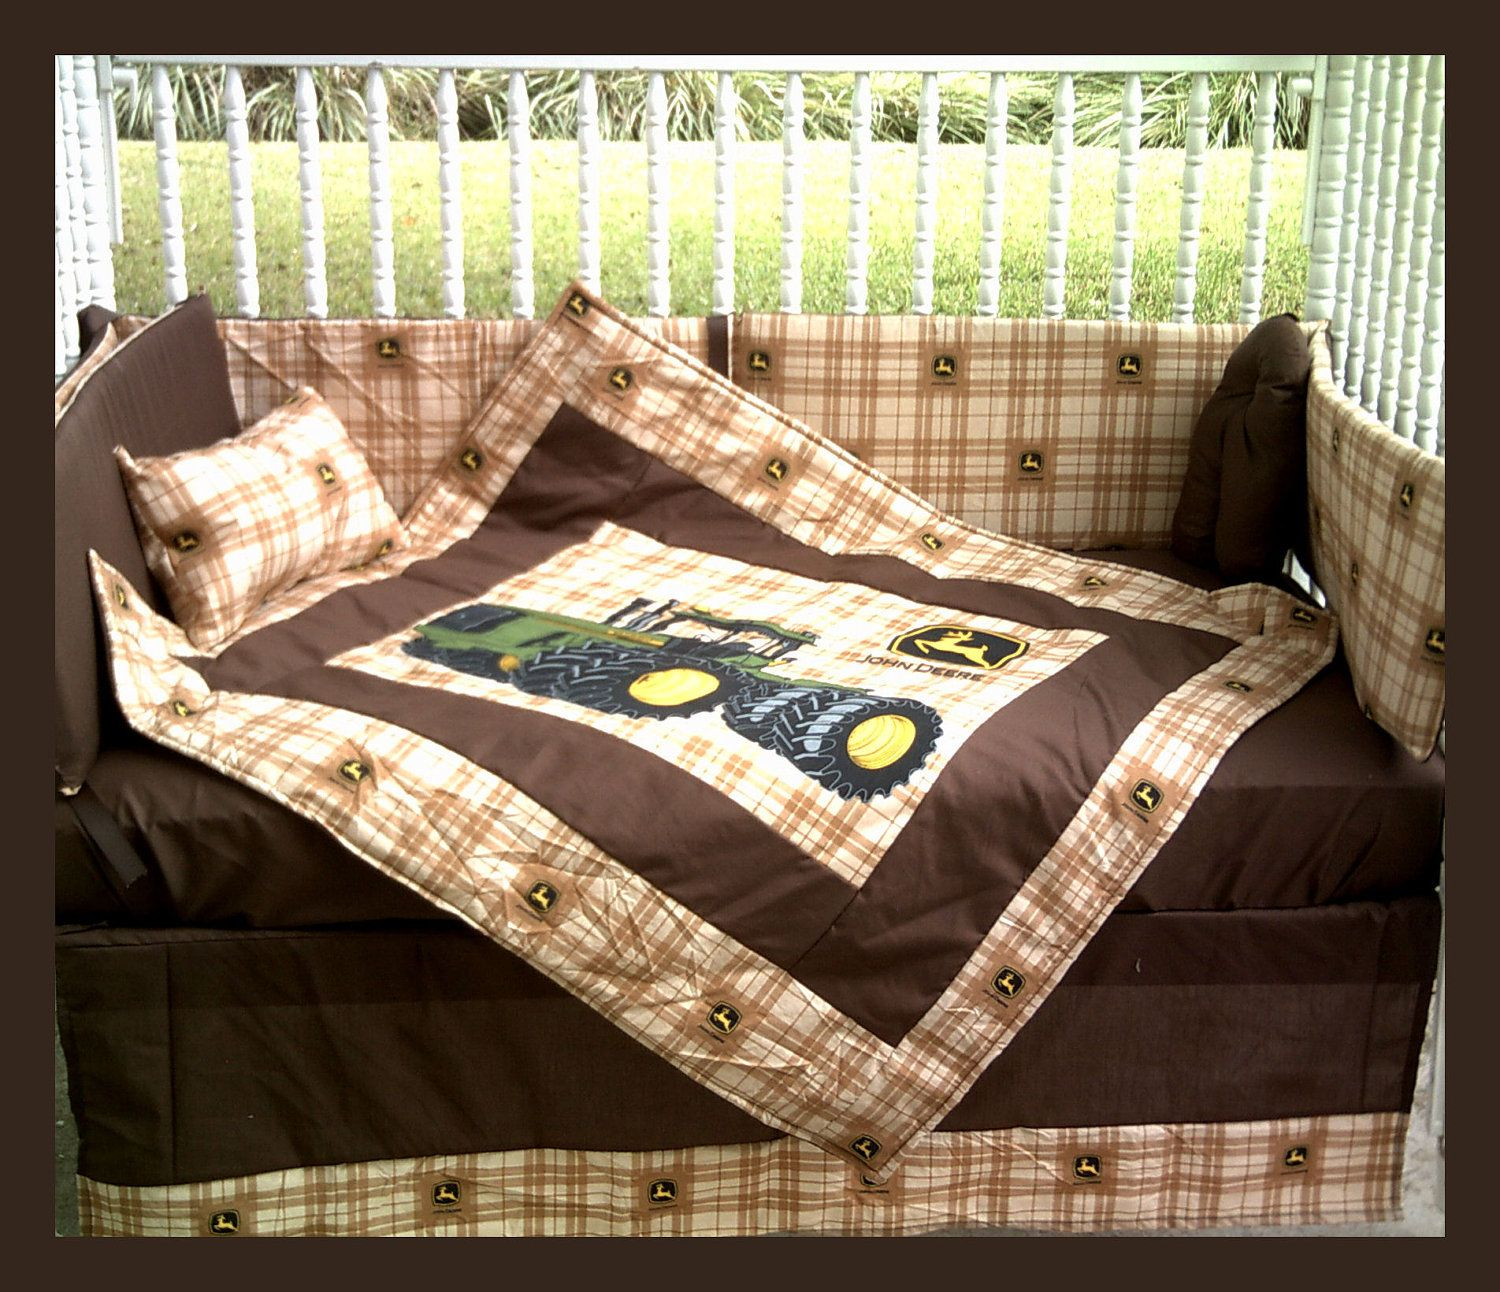 New JOHN DEERE baby crib bedding set in brown Deere plaid fabric and ...